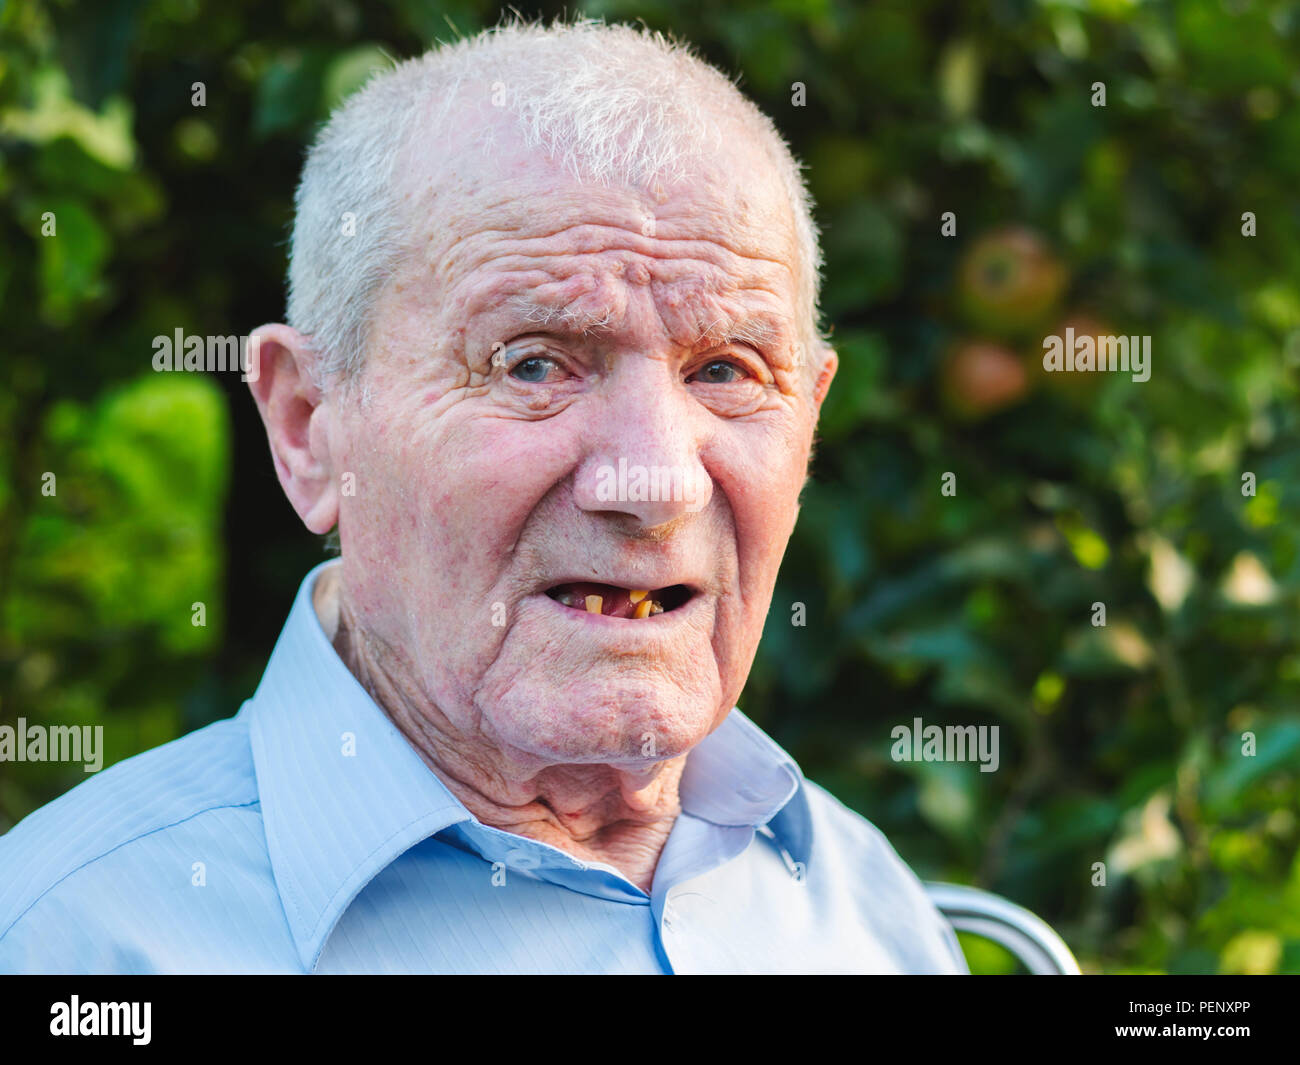 Very old man portrait. Grandfather is looking to camera. Portrait: aged, elderly, senior. Close-up of old man sitting alone outdoors. - Stock Image